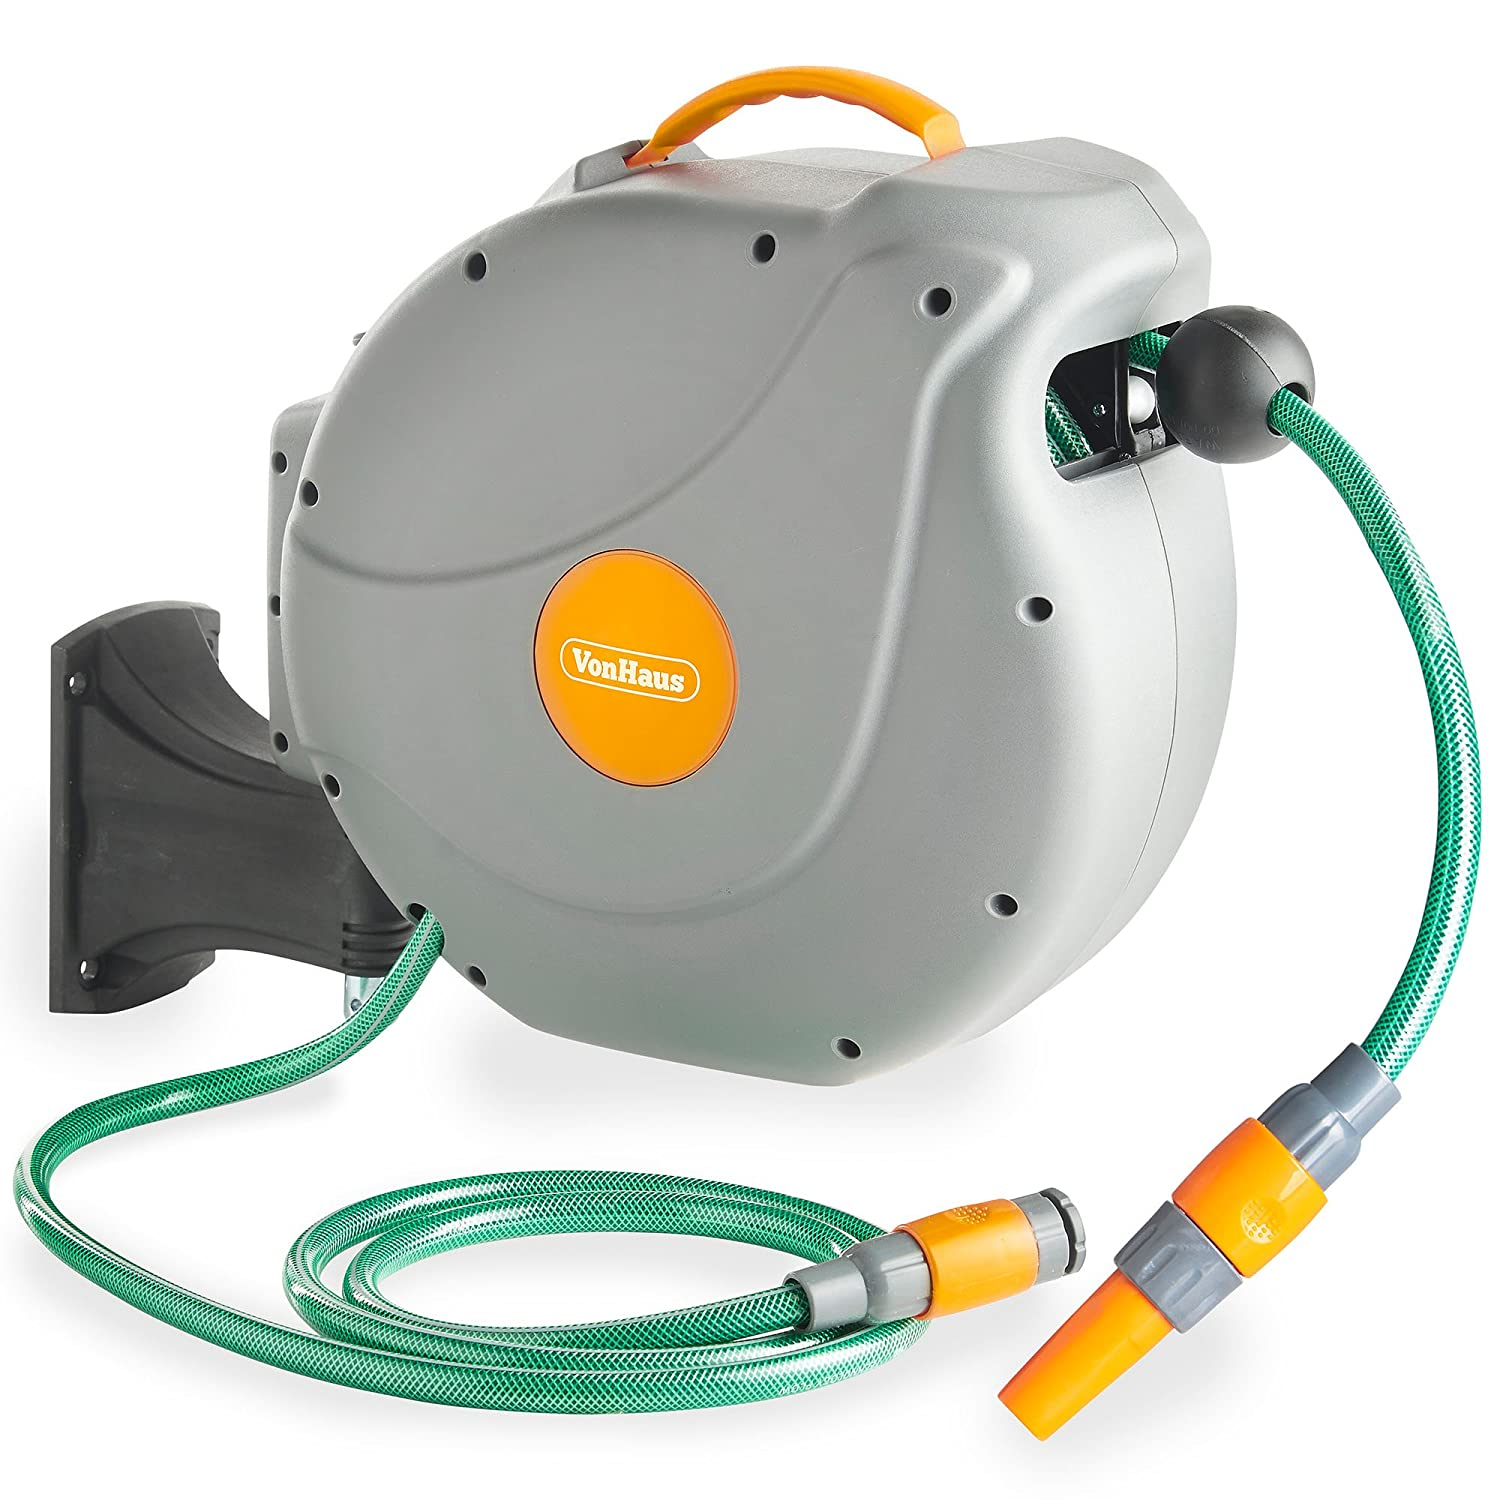 Exceptionnel VonHaus 20M Garden Hose   Auto Rewind Wall Mounted Reel: Amazon.co.uk:  Garden U0026 Outdoors